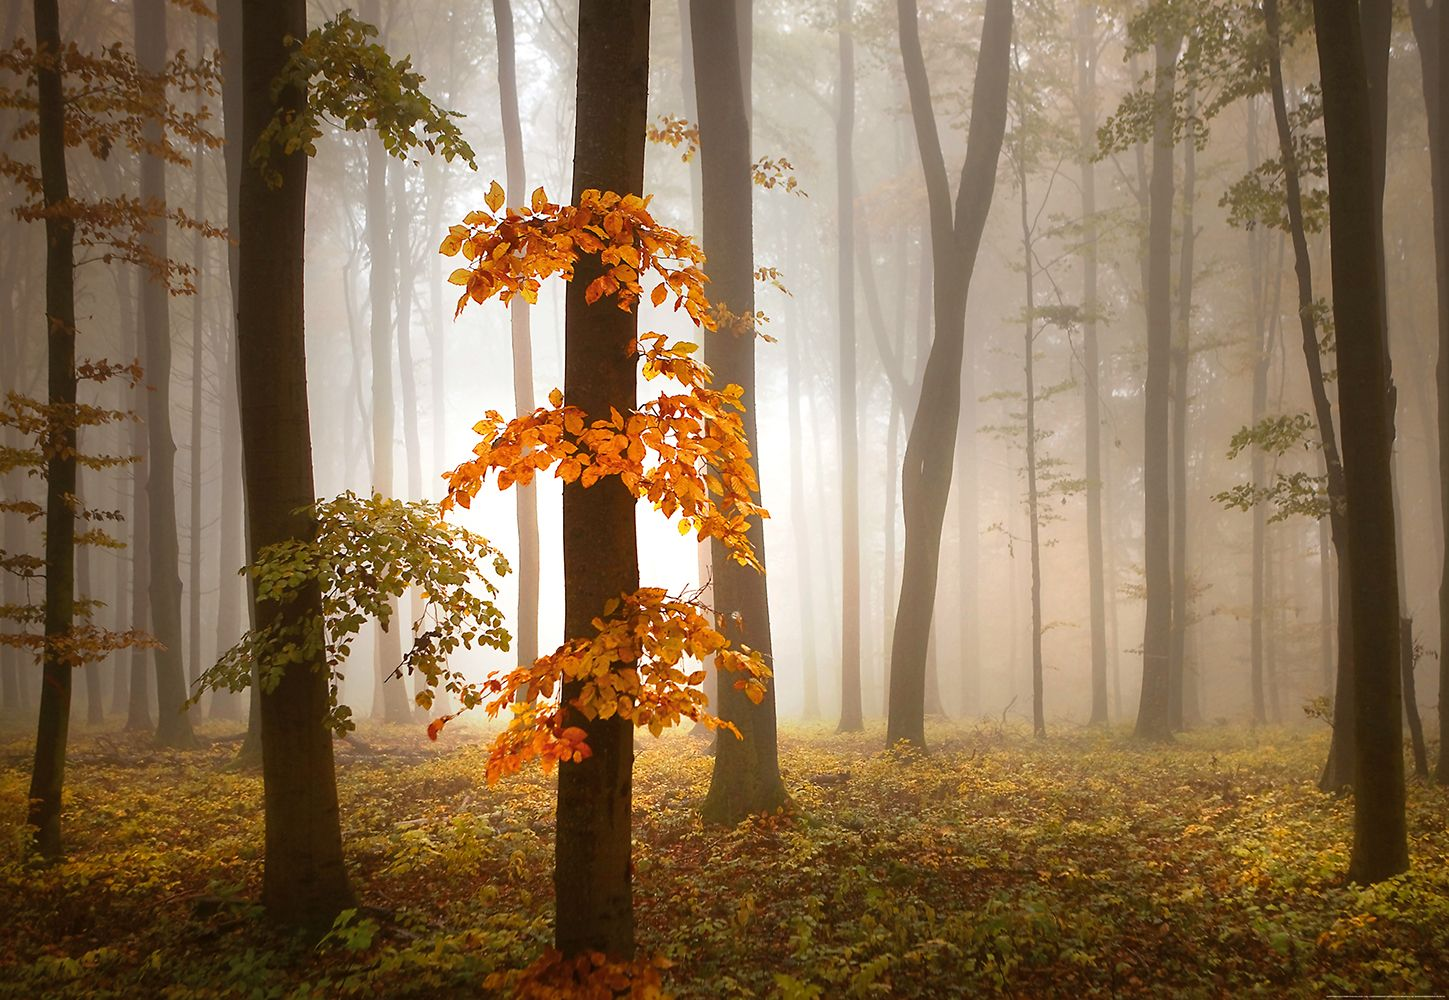 Valokuvatapetti Idealdecor Digital Foggy Autumn Forrest 4-osaa 5153-4V-1 254x368 cm